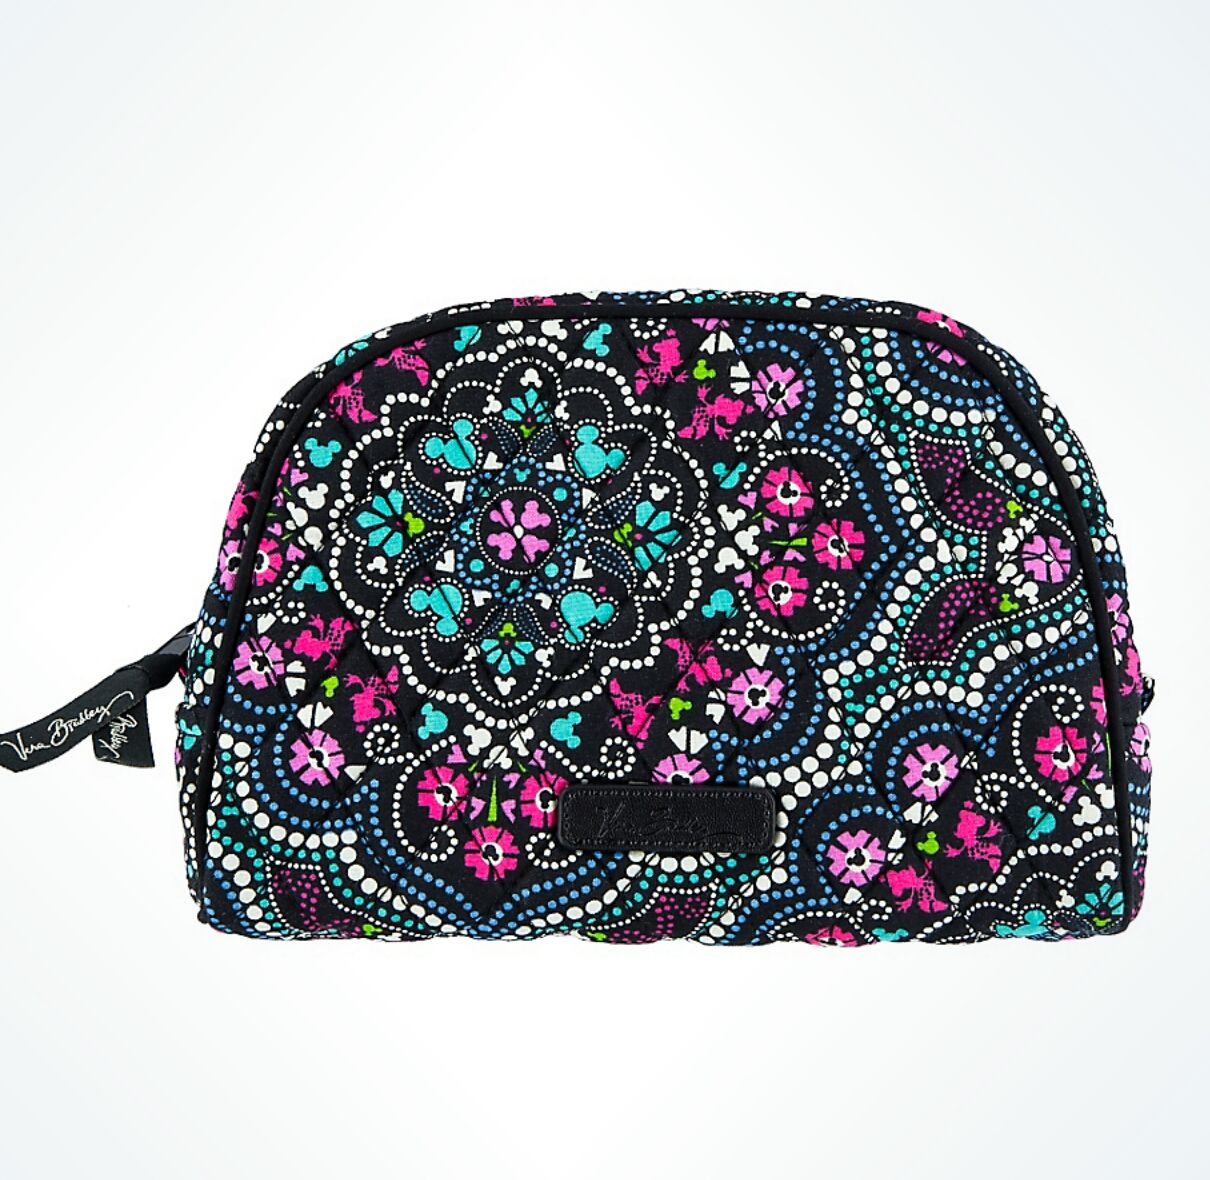 The Newest Disney Vera Bradley Collection, Mickey and Minnie Mouse Medallion,  Is Now Available 9426282d3e